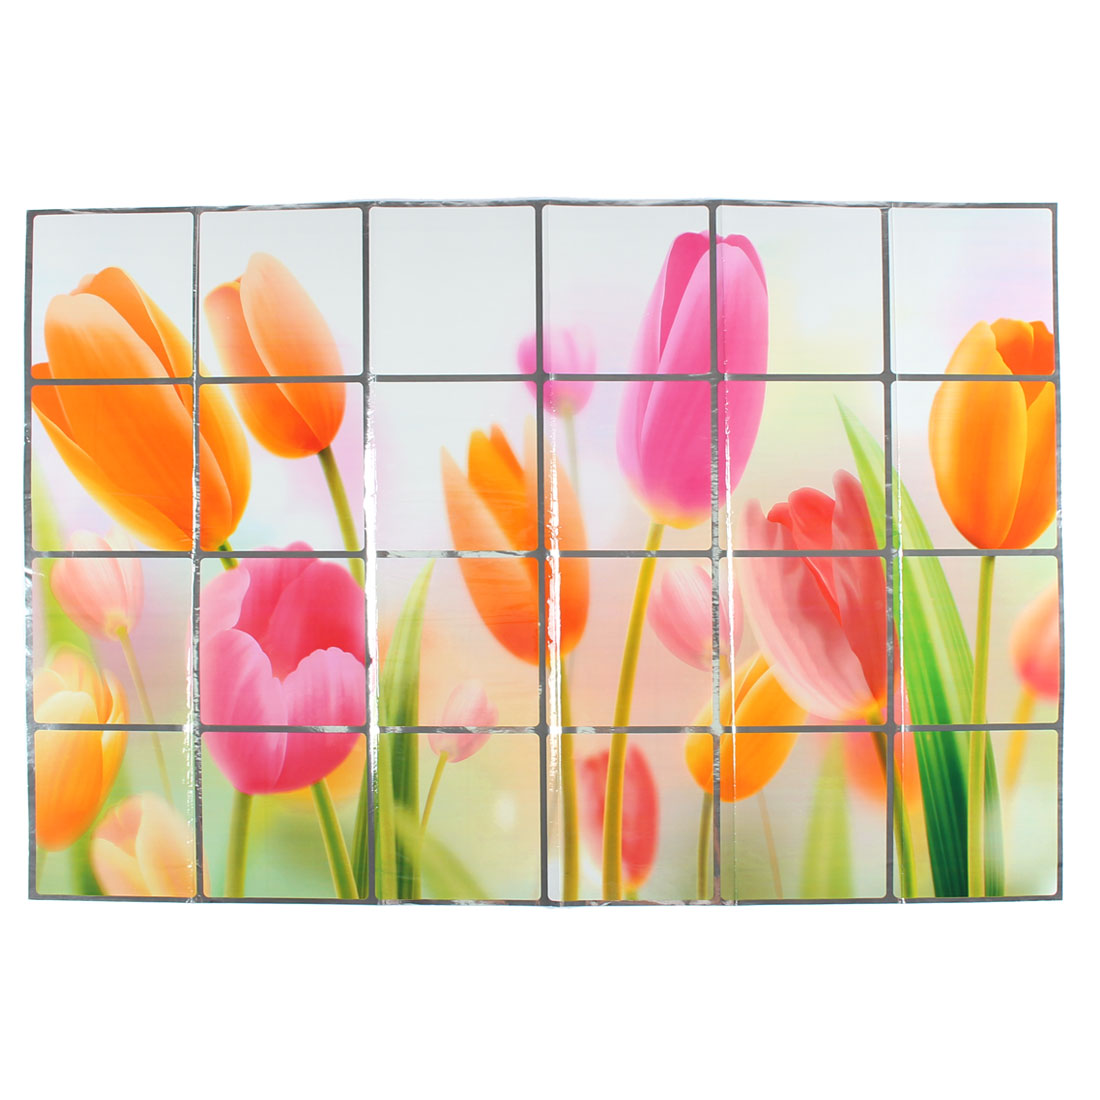 Kitchen Florals Printed Removable Self-adhesive Oilproof Wall Window Sticker 90 x 60cm